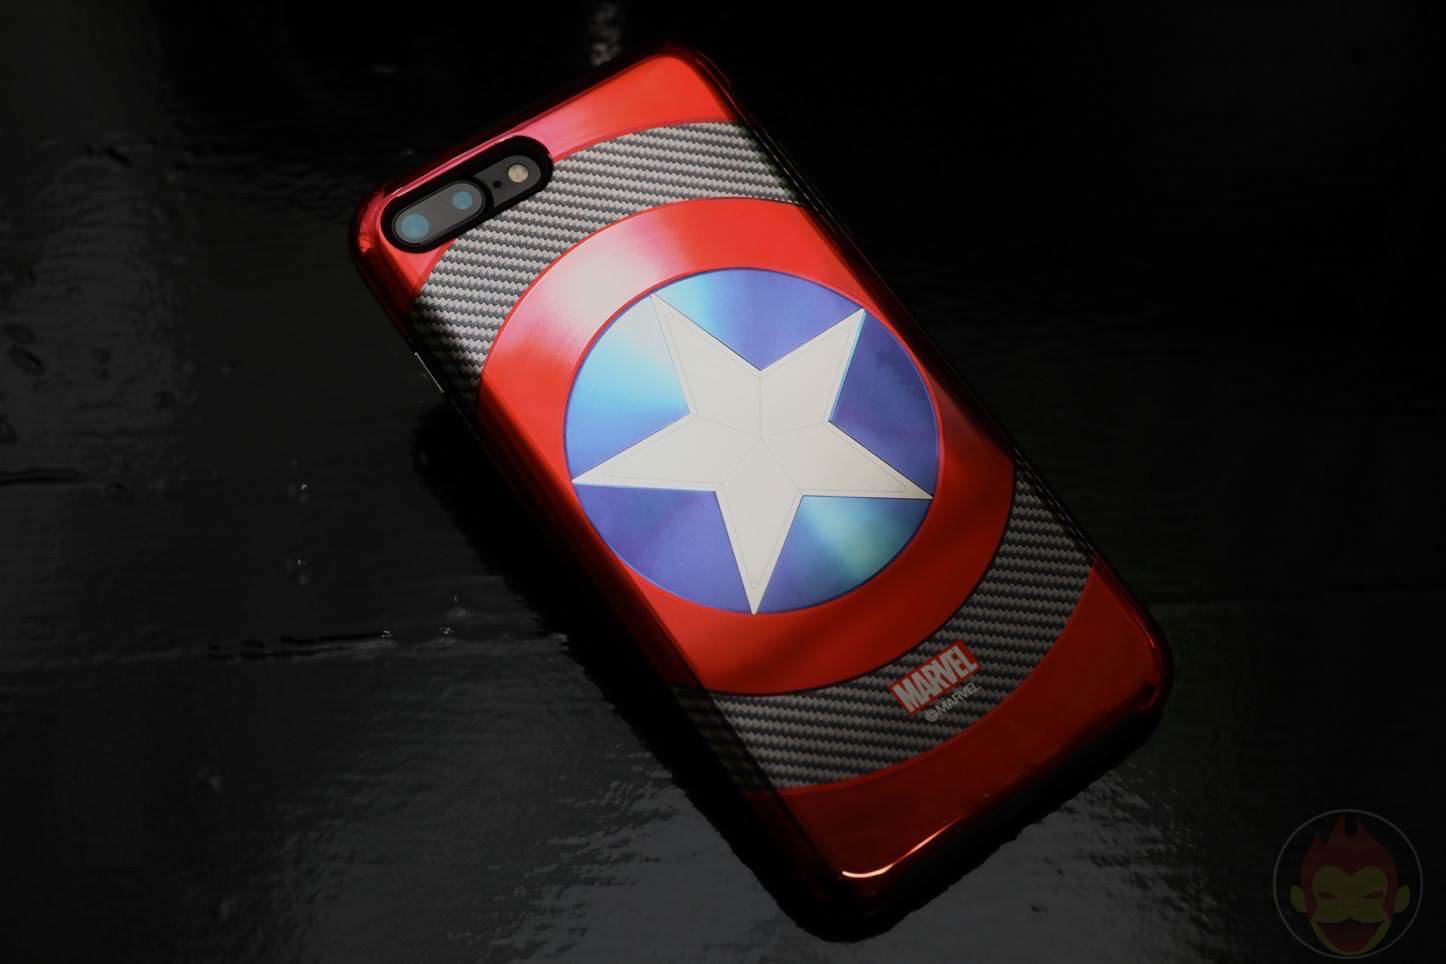 MARVEL-Design-iPhone-7-Plus-Case-and-Ring-13.jpg